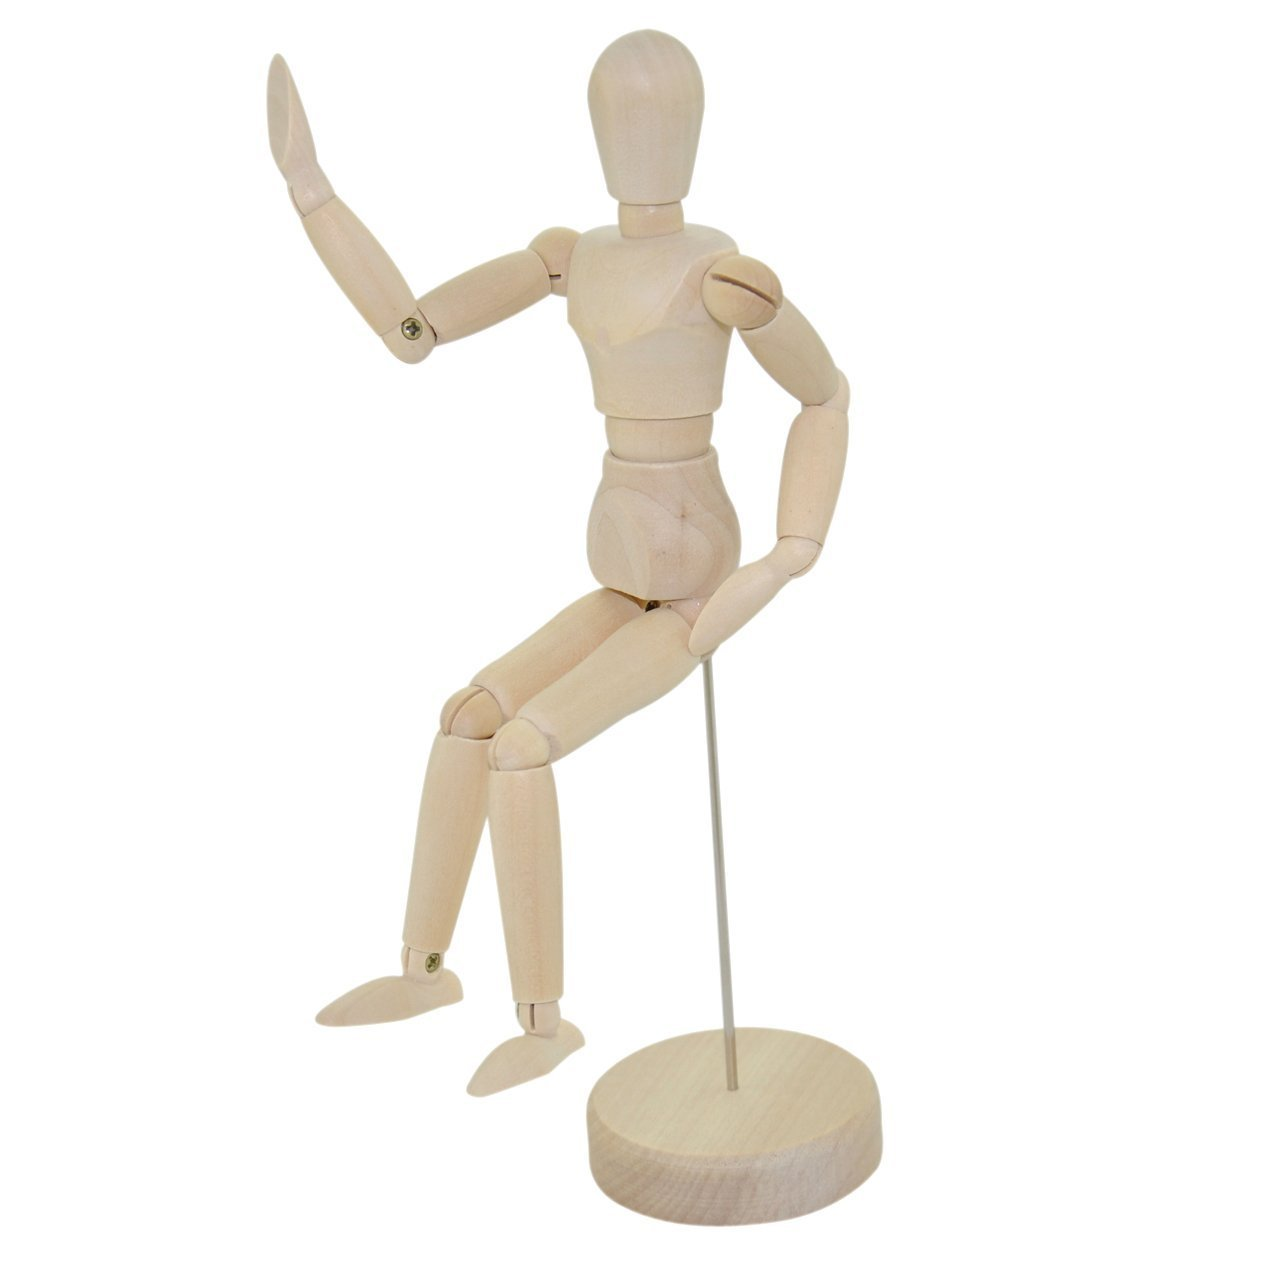 For Art Supply Drawing Sketch Art Manikin-For Commercial Sample Display Wood Unisex Art Mannequin DecorLux WHITE Wooden Sectioned Postural Adjustable Body 13 with Stand